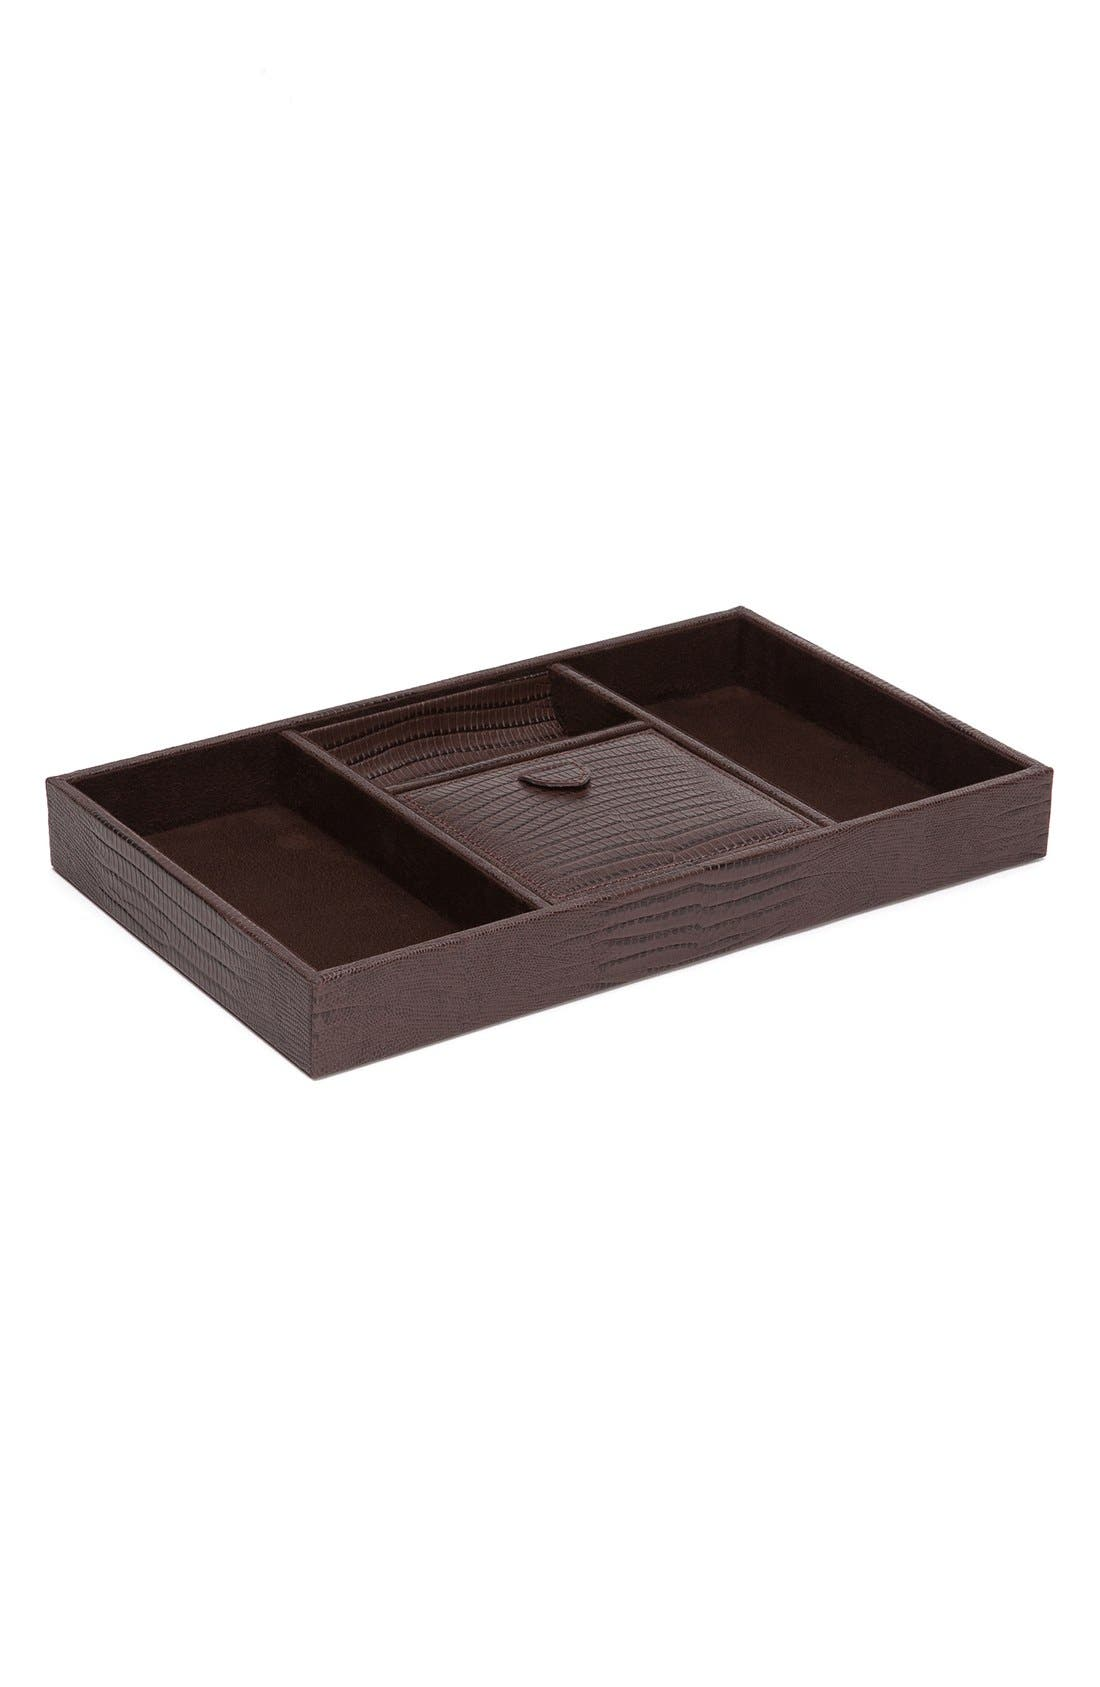 Blake Valet Tray,                             Main thumbnail 1, color,                             Brown Lizard